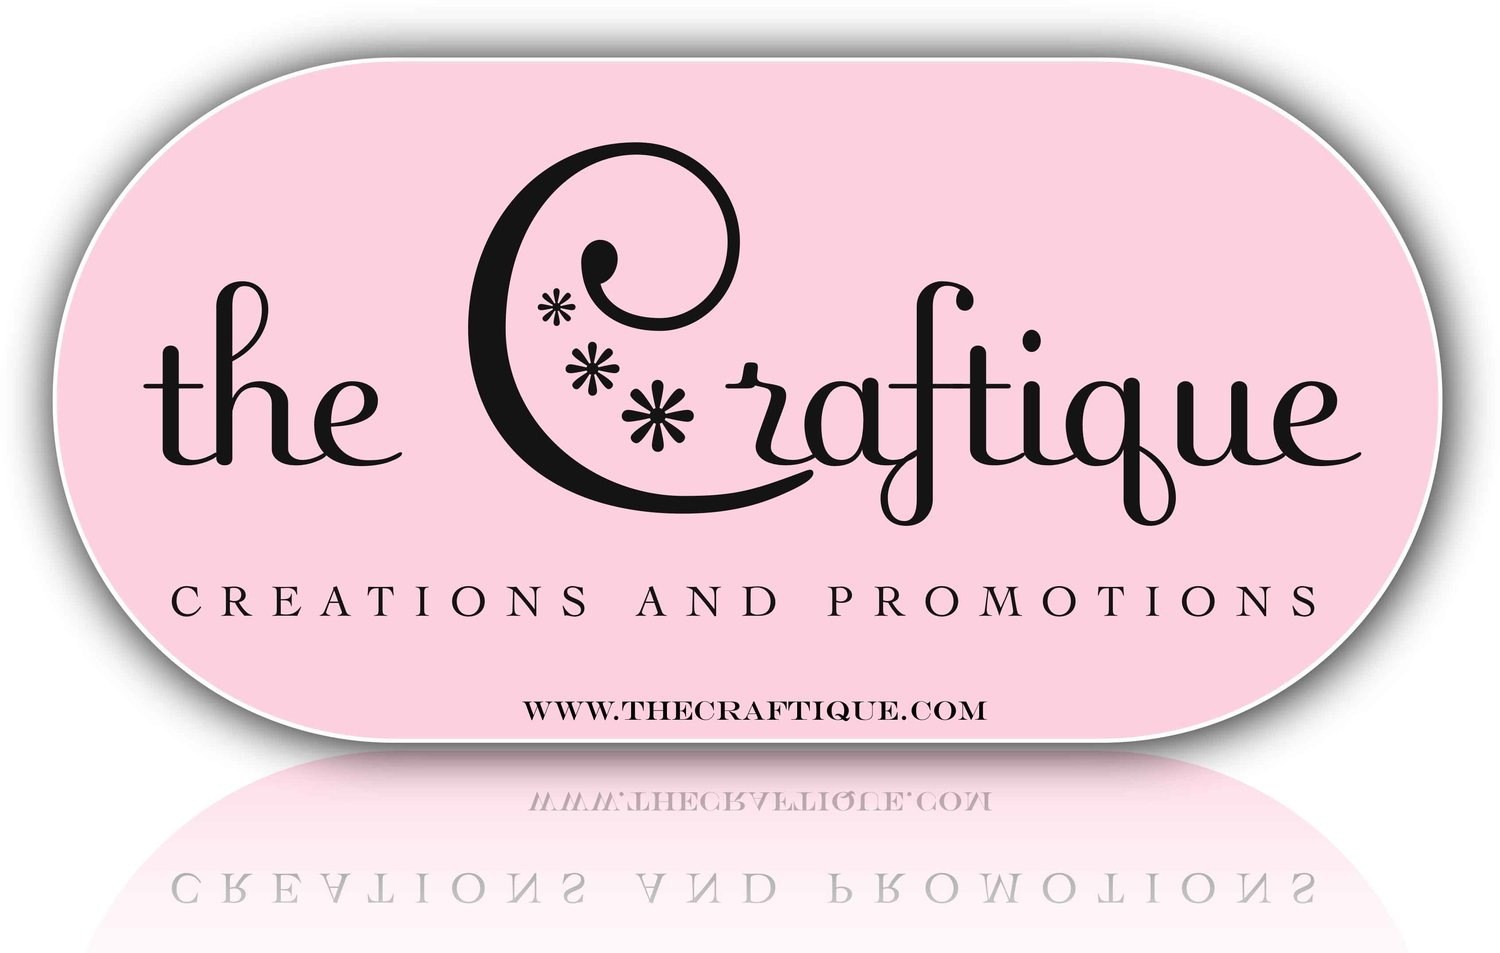 The Craftique